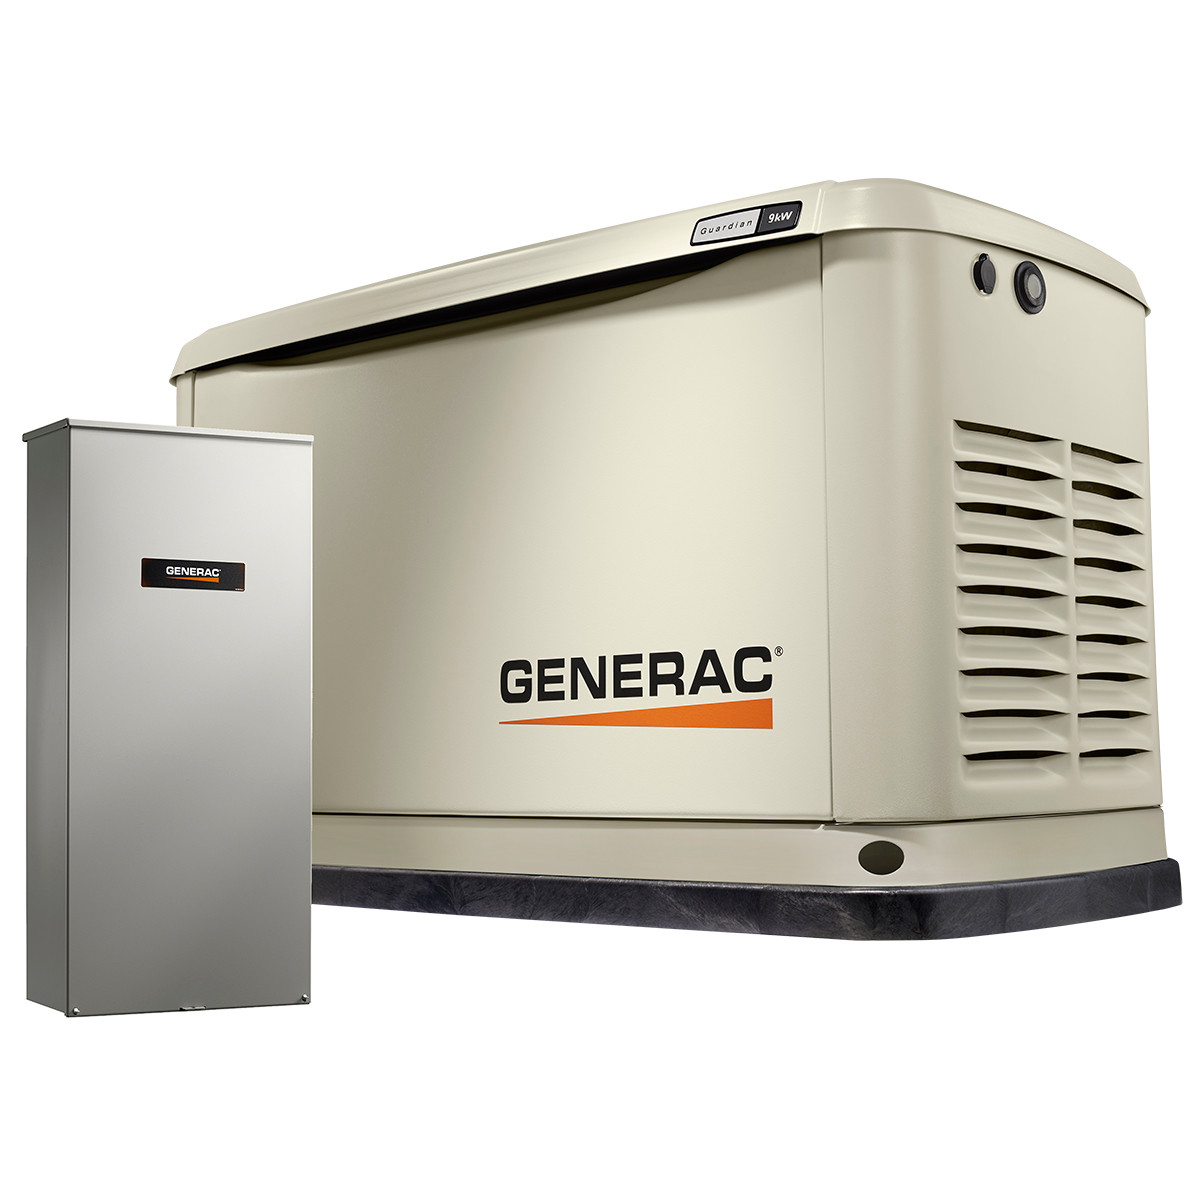 hight resolution of generac 70301 9kw guardian generator with wi fi 100a 16 circuit transfer switch